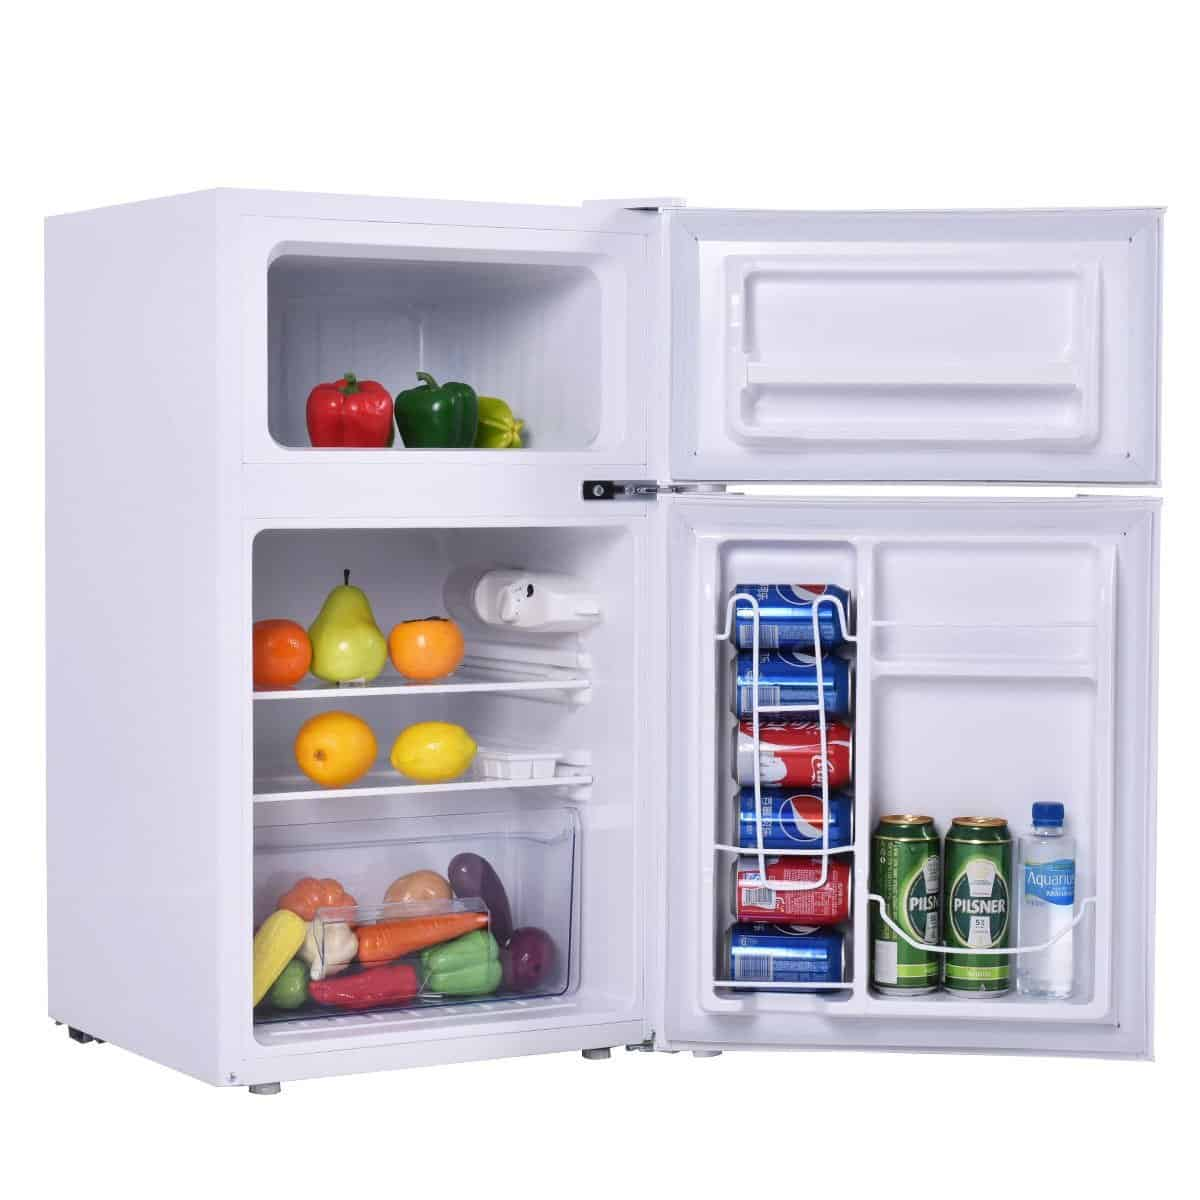 Best Fridge Freezers 2018  Best For Small Spaces. Recessed Led Kitchen Lighting. Best Light For Kitchen Ceiling. Floor Tiles For Kitchen Design. Red Kitchen Floor Tiles. Kitchen Appliances India. Ikea Kitchen Lighting Ceiling. Red And Black Kitchen Tiles. White Kitchen Stainless Steel Appliances